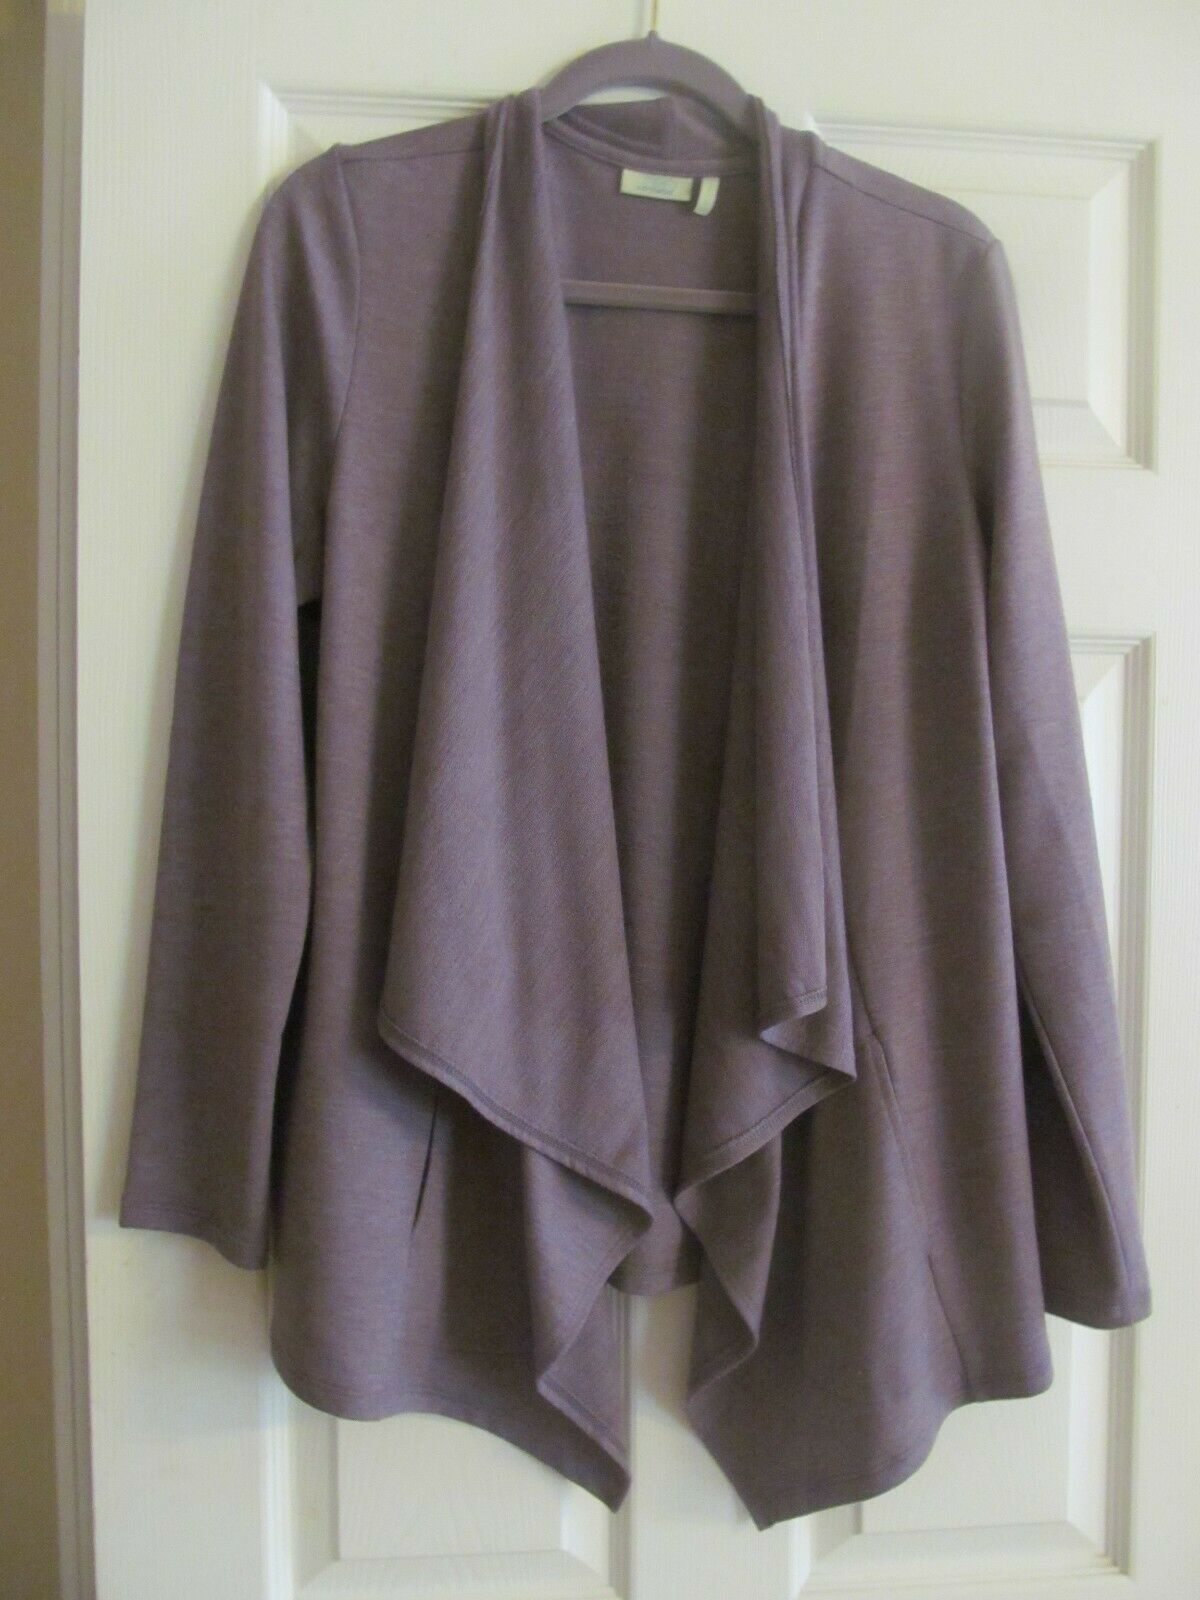 NEW LOGO Lounge by Lori goldstein Fr Terry Open Front Cardigan wild mushroom lge